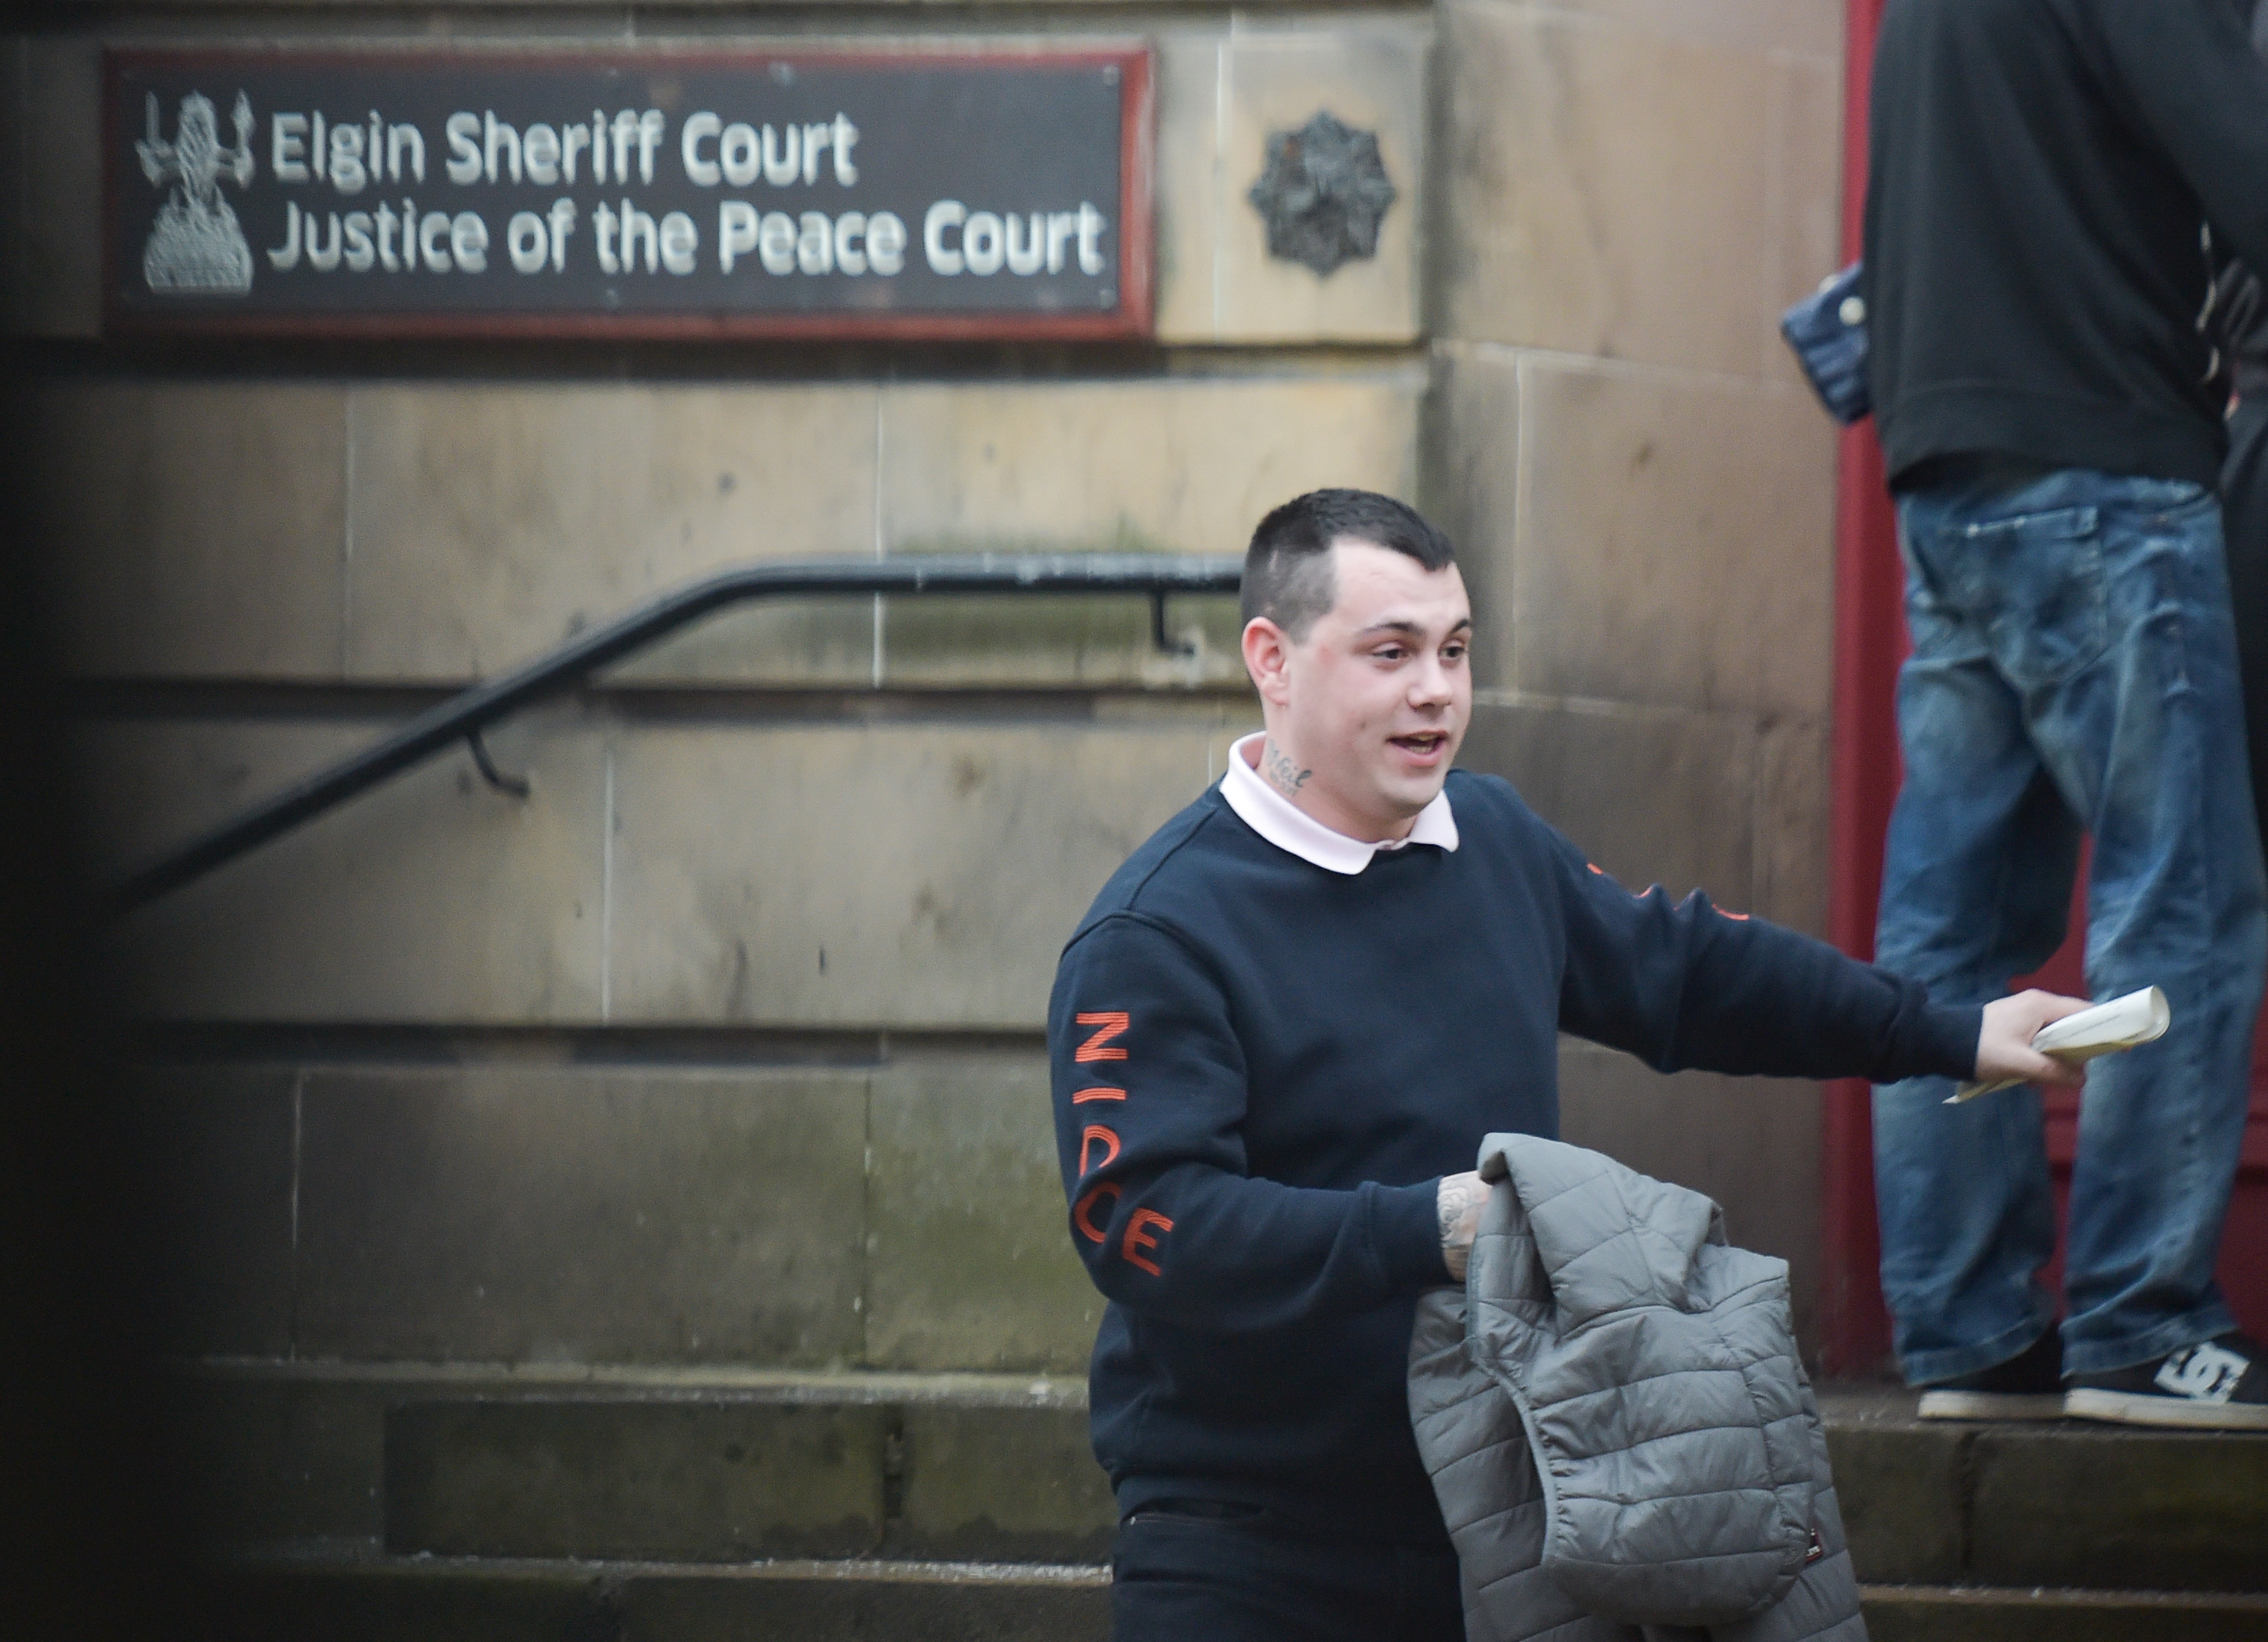 Liam Forsyth at Elgin Sheriff Court.